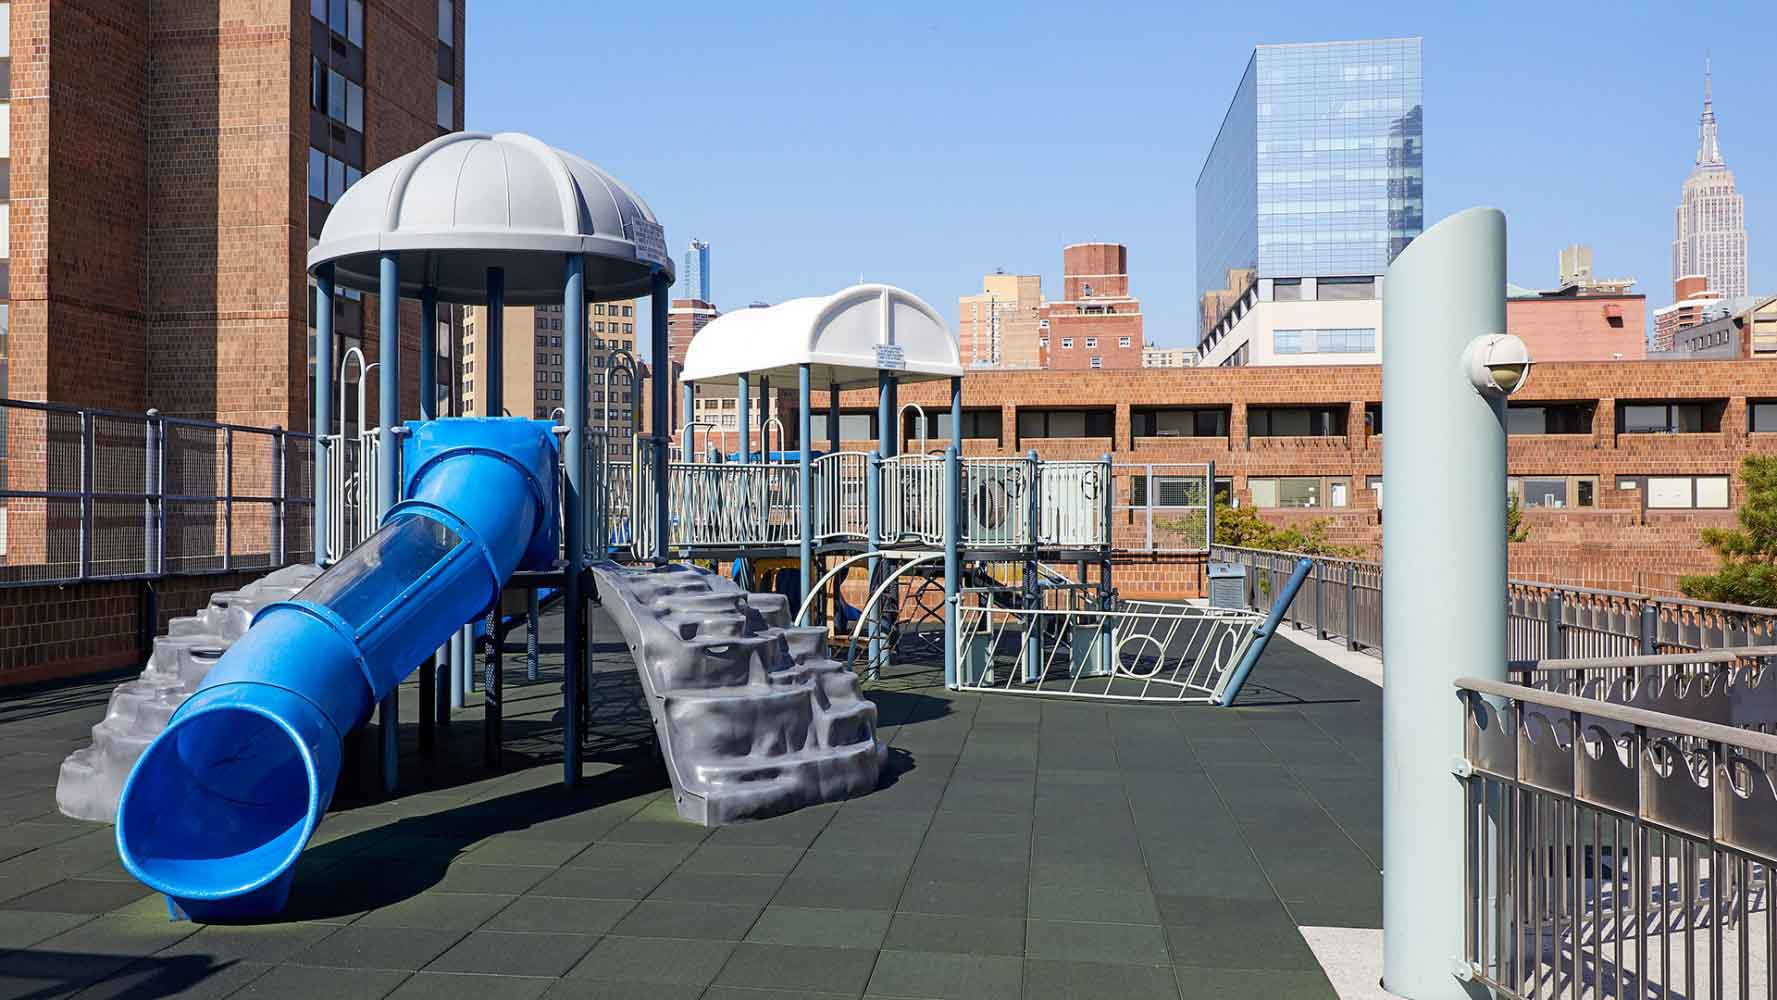 Waterside Playground